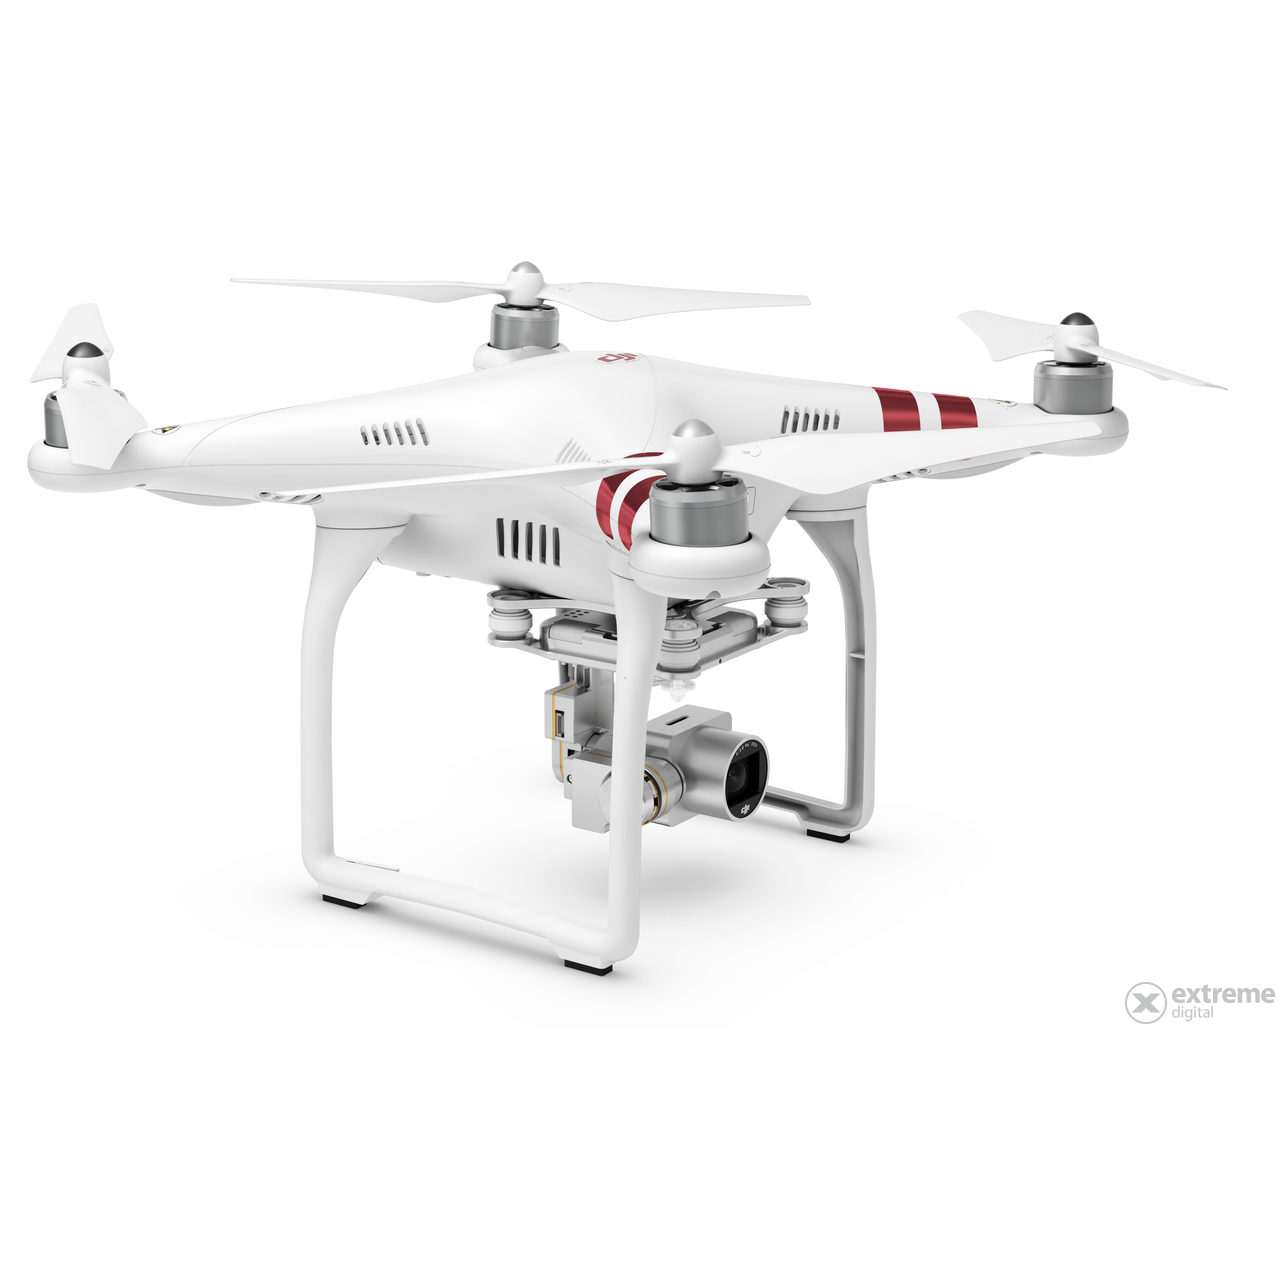 dji phantom 3 standard dron extreme digital. Black Bedroom Furniture Sets. Home Design Ideas